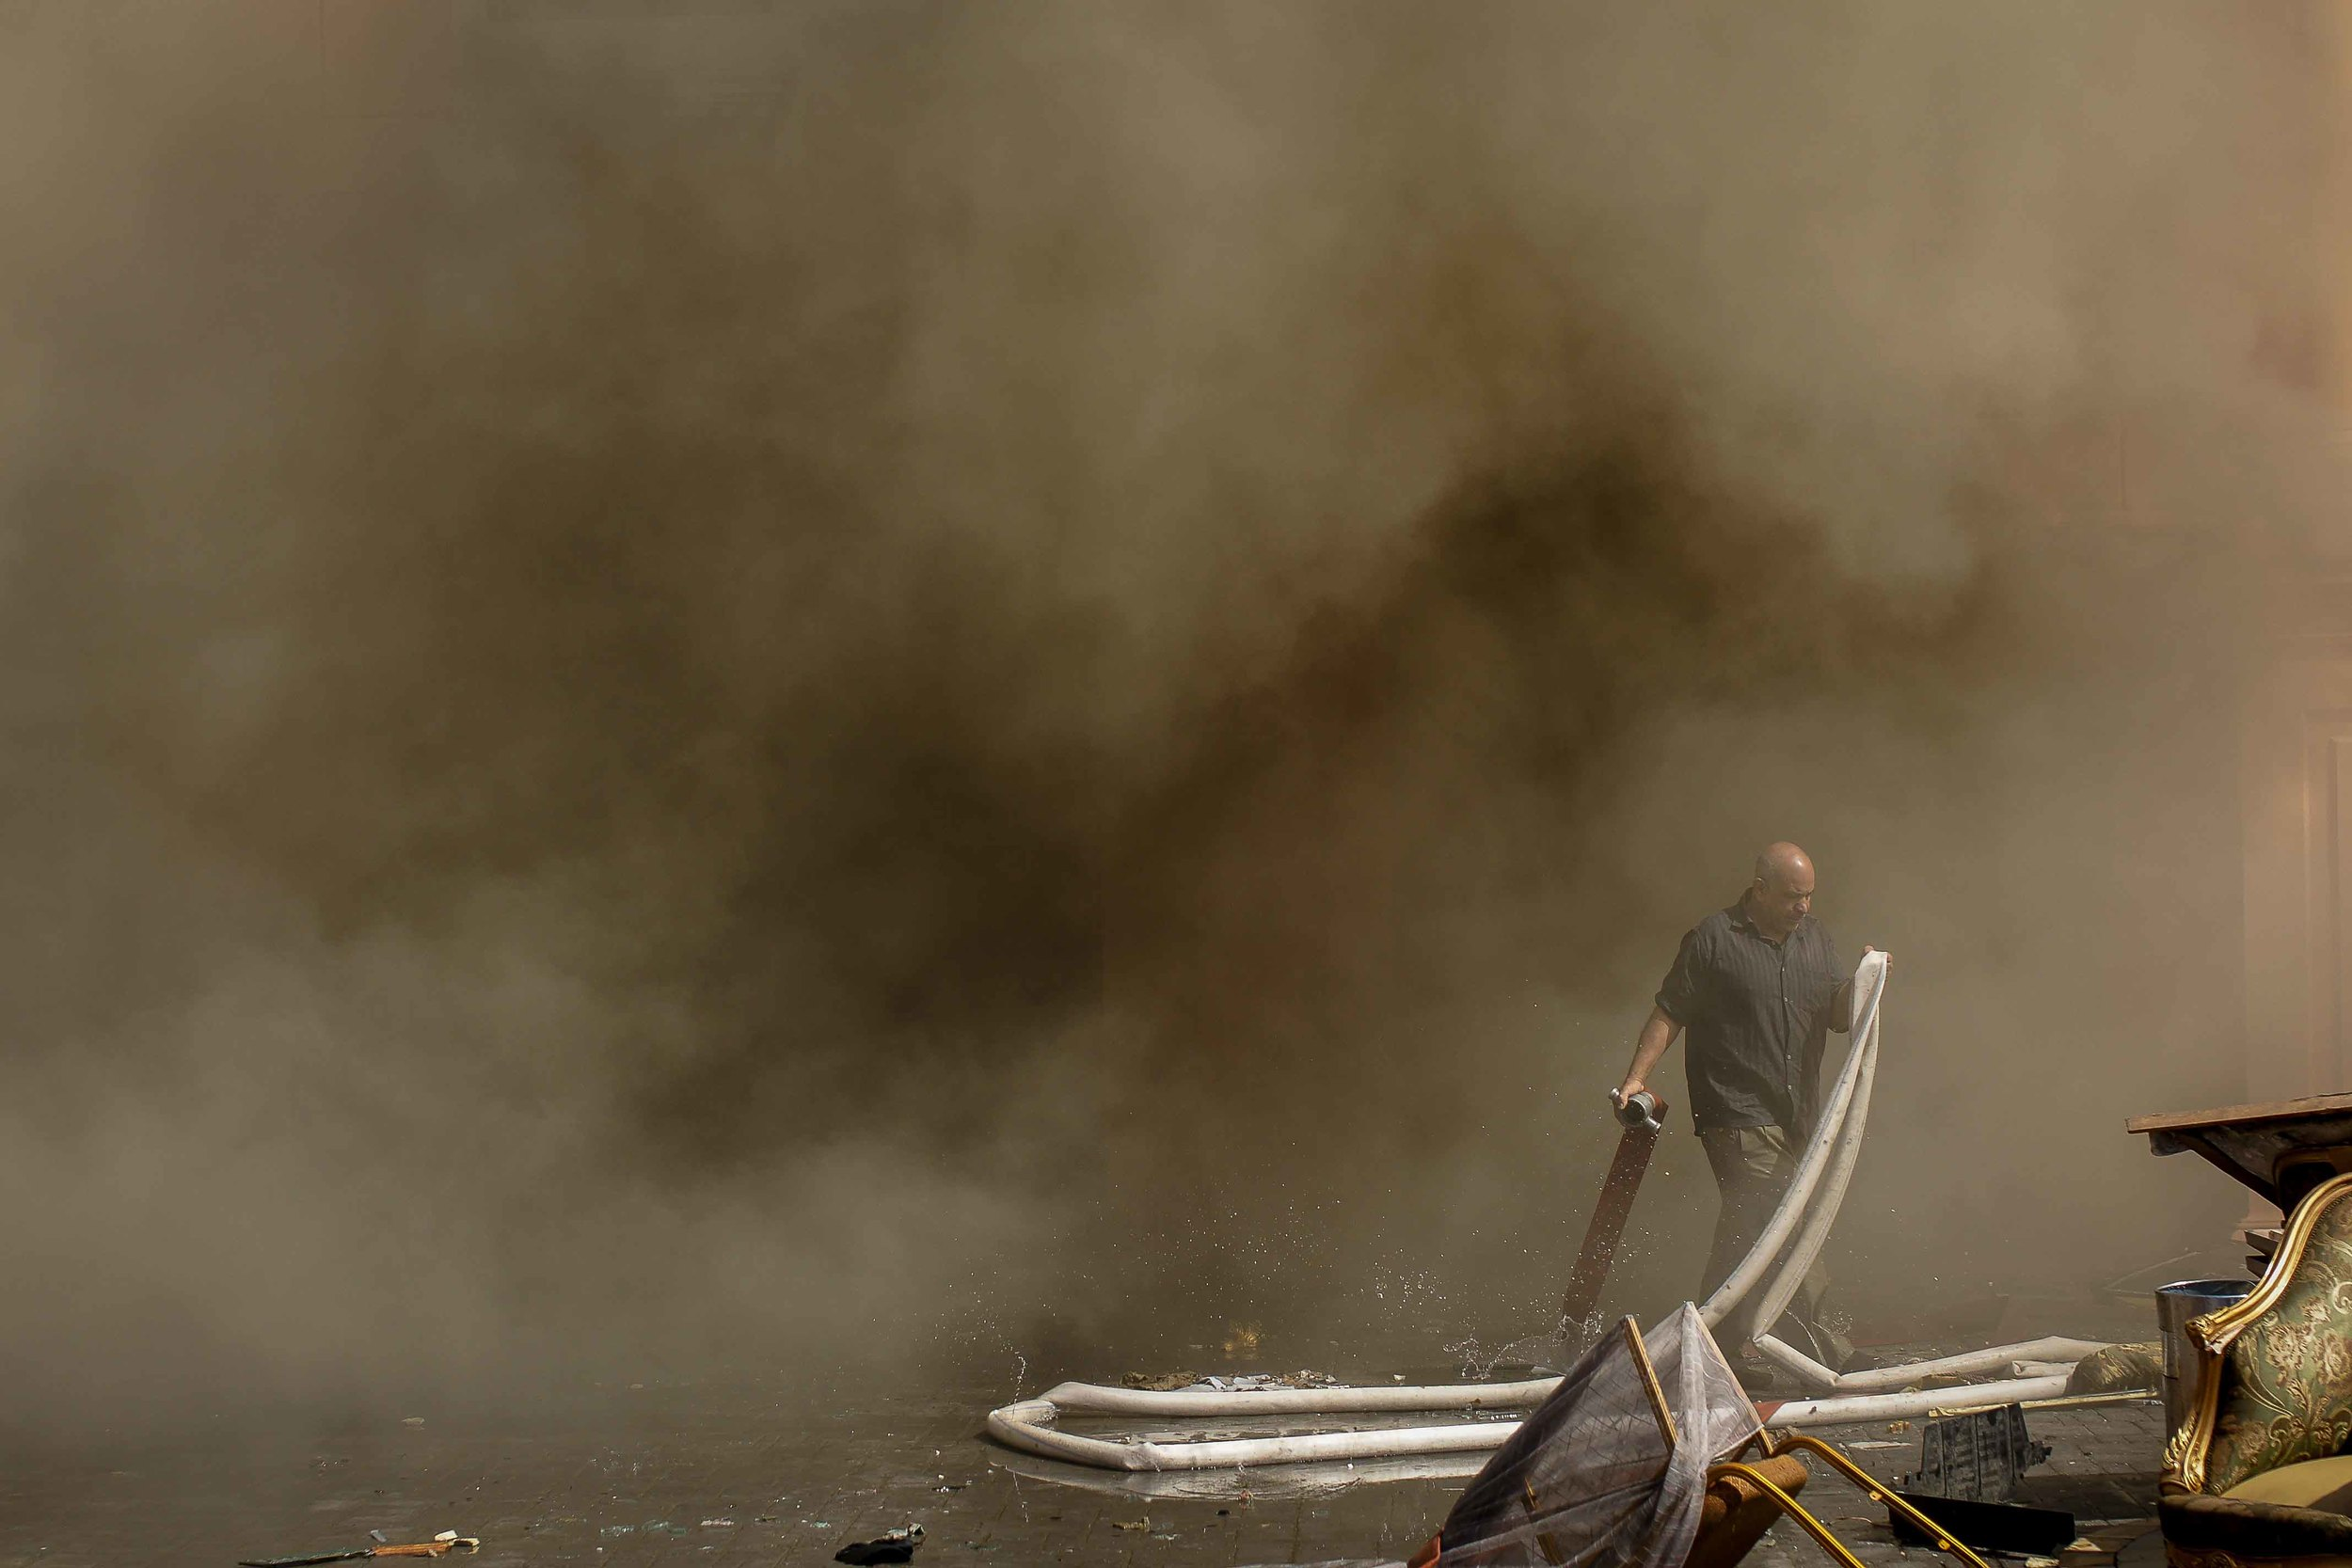 Workers tried in vain to contain the blaze as thick smoke poured out of the building.